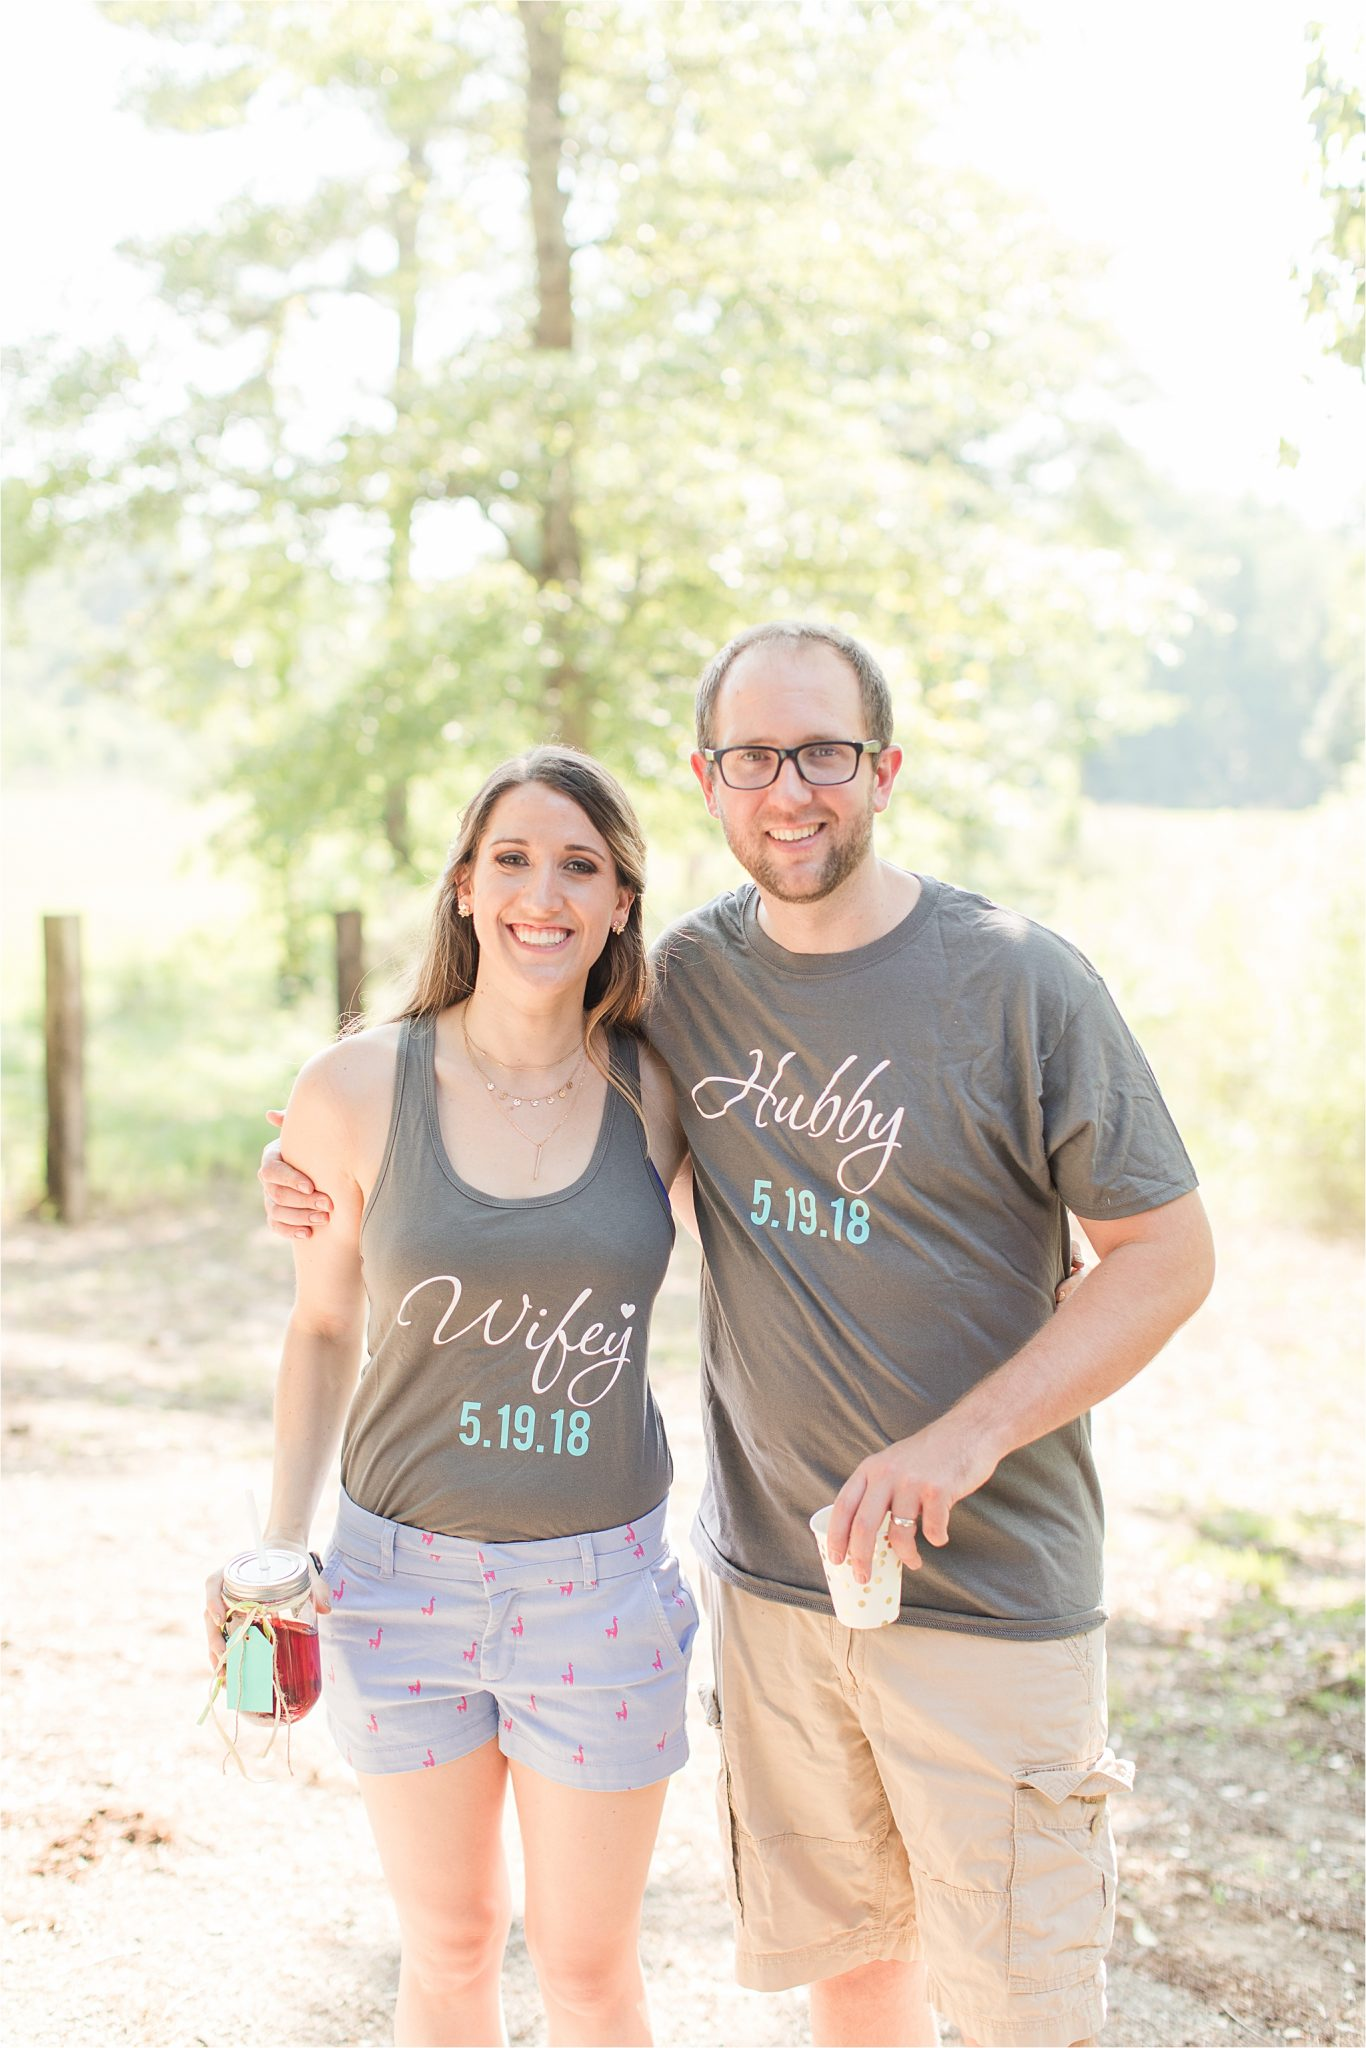 wedding reception-comfy bride and groom outfits-clothes-hubby and wife tshirts